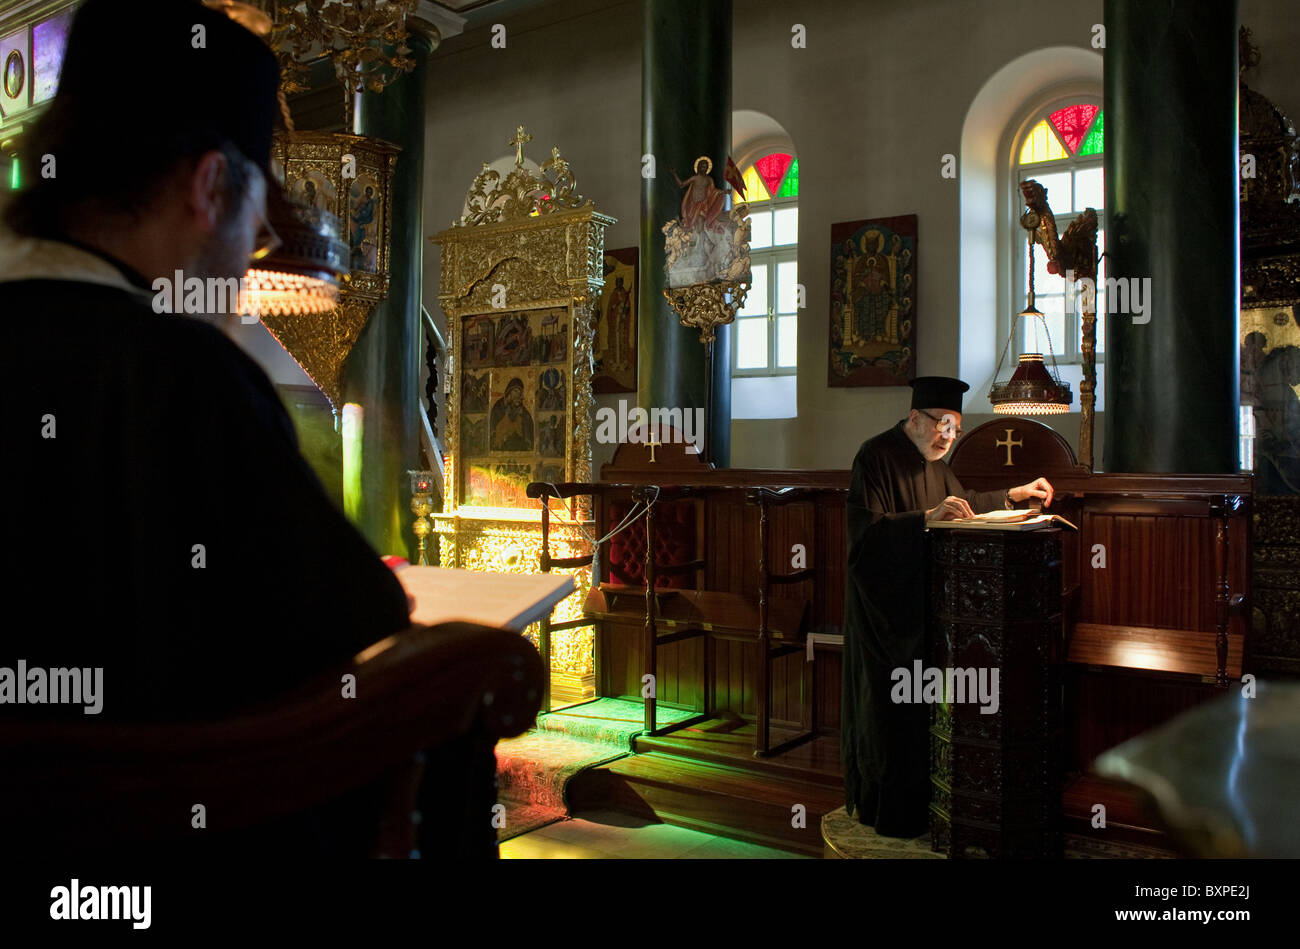 Evening service in the Church of the Holy Trinity, Heybeliada, Turkey - Stock Image